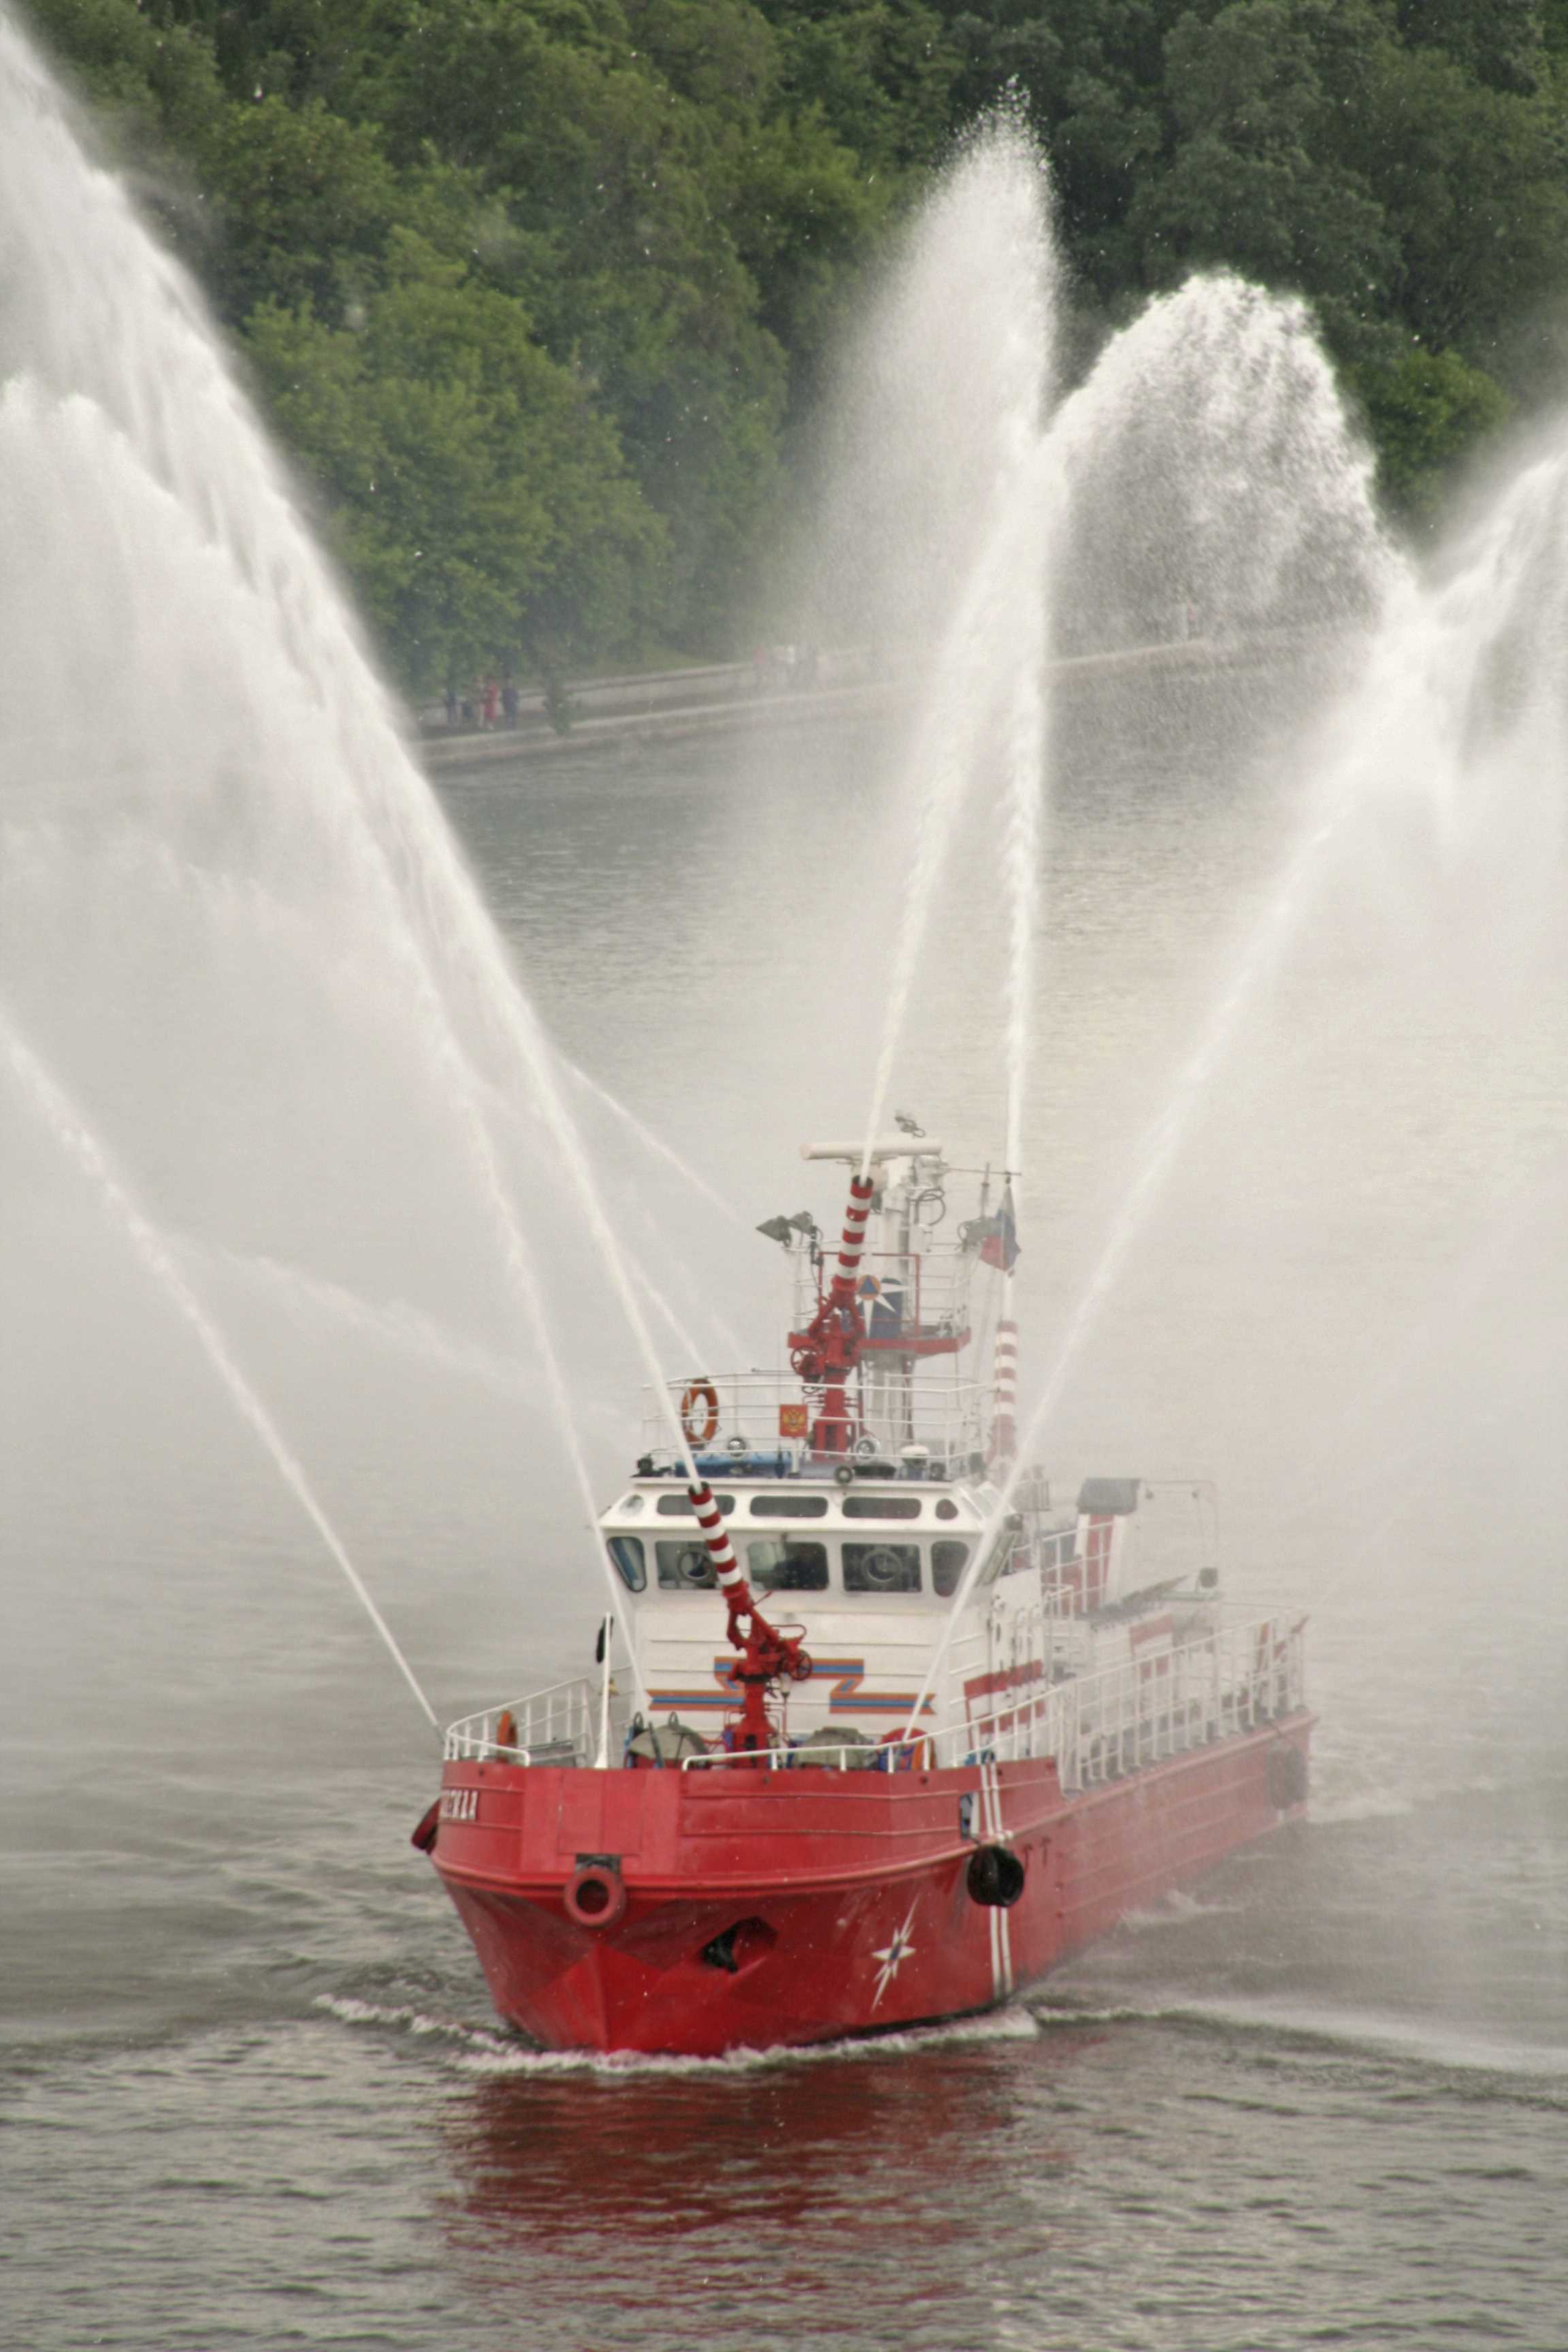 Boat Fire Safety Week 2015